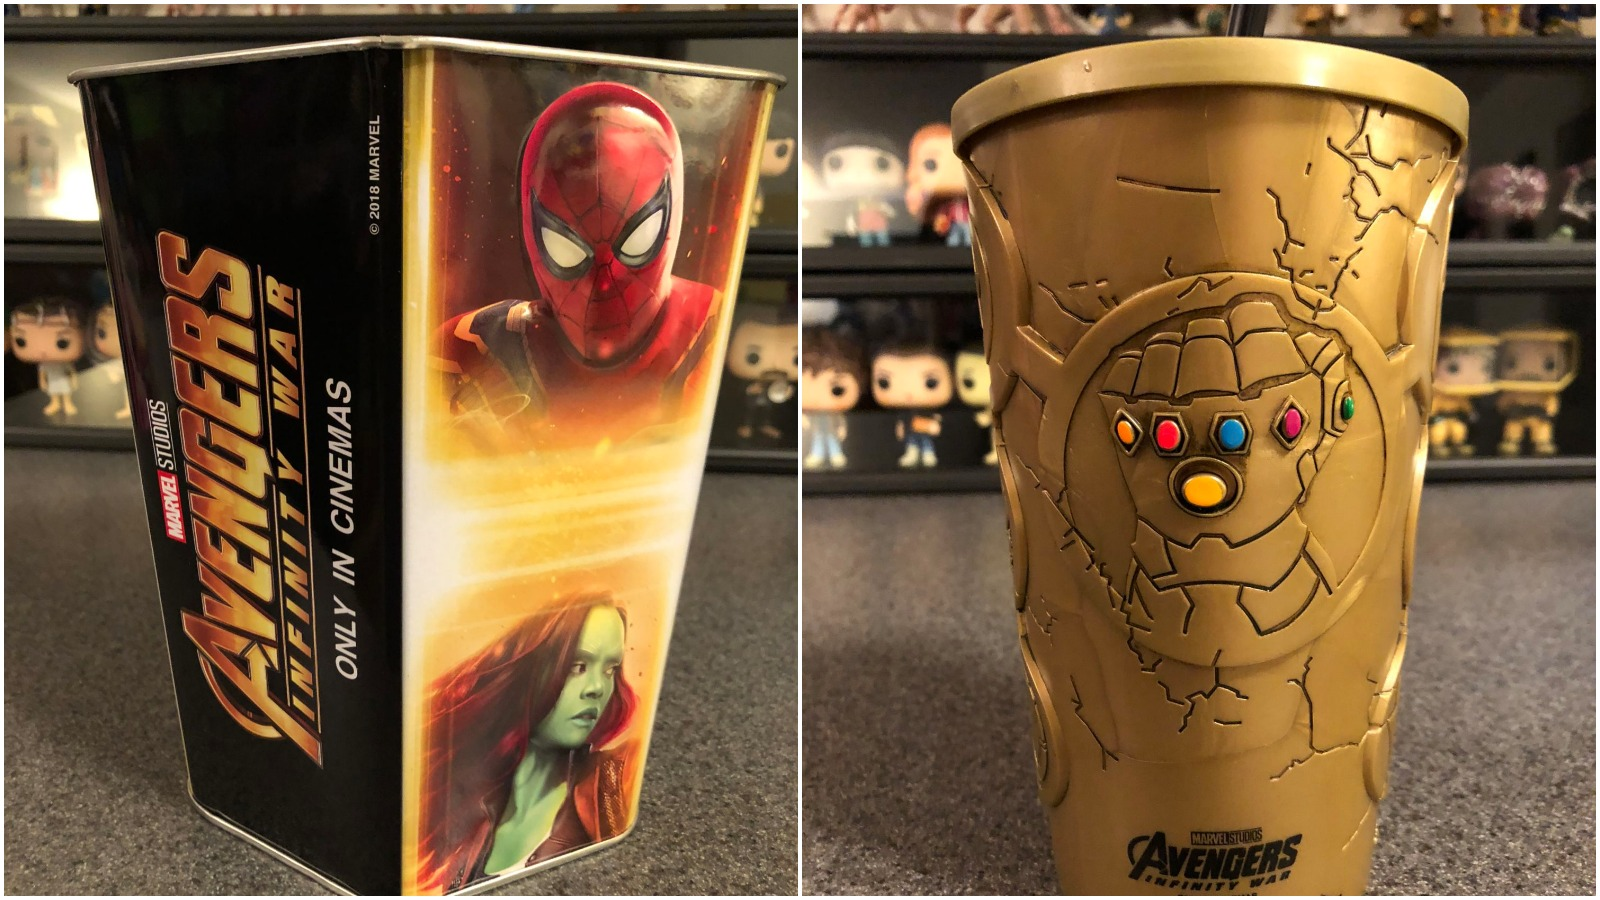 Avengers: Infinity War Cinemark Cup and tub